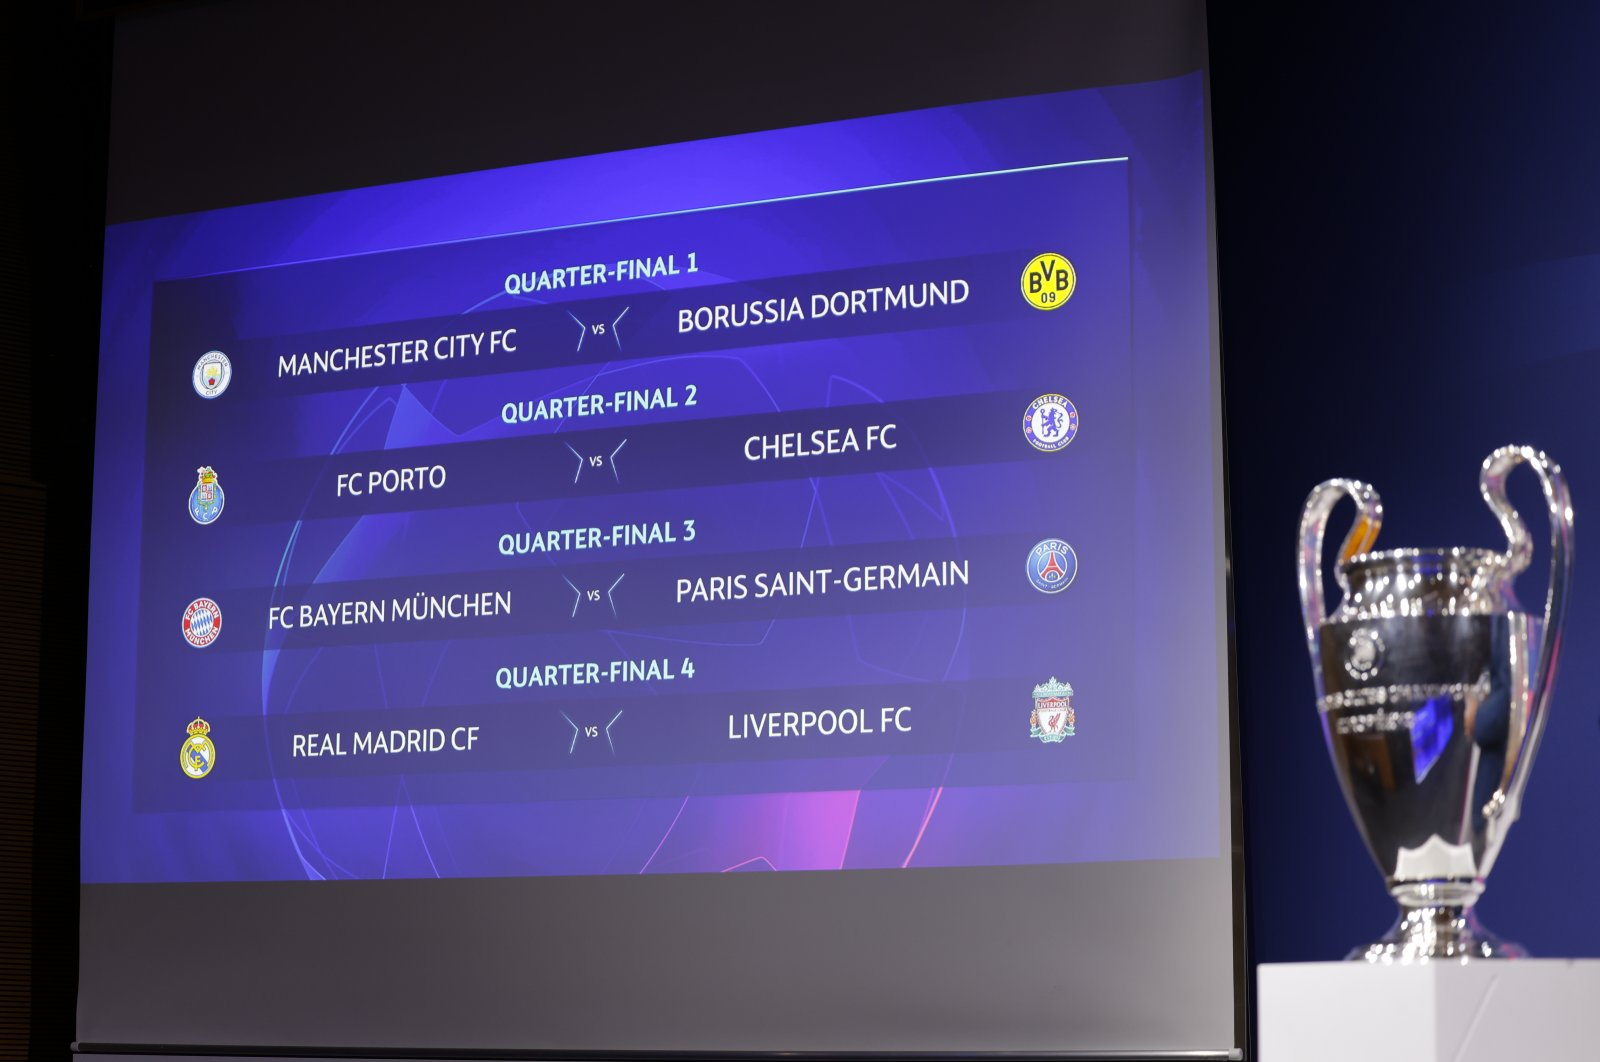 This handout photo shows the quarterfinal draw for the UEFA Champions League 2020/21, at the UEFA headquarters, The House of European Football in Nyon, Switzerland, March 19, 2021. (EPA Photo)